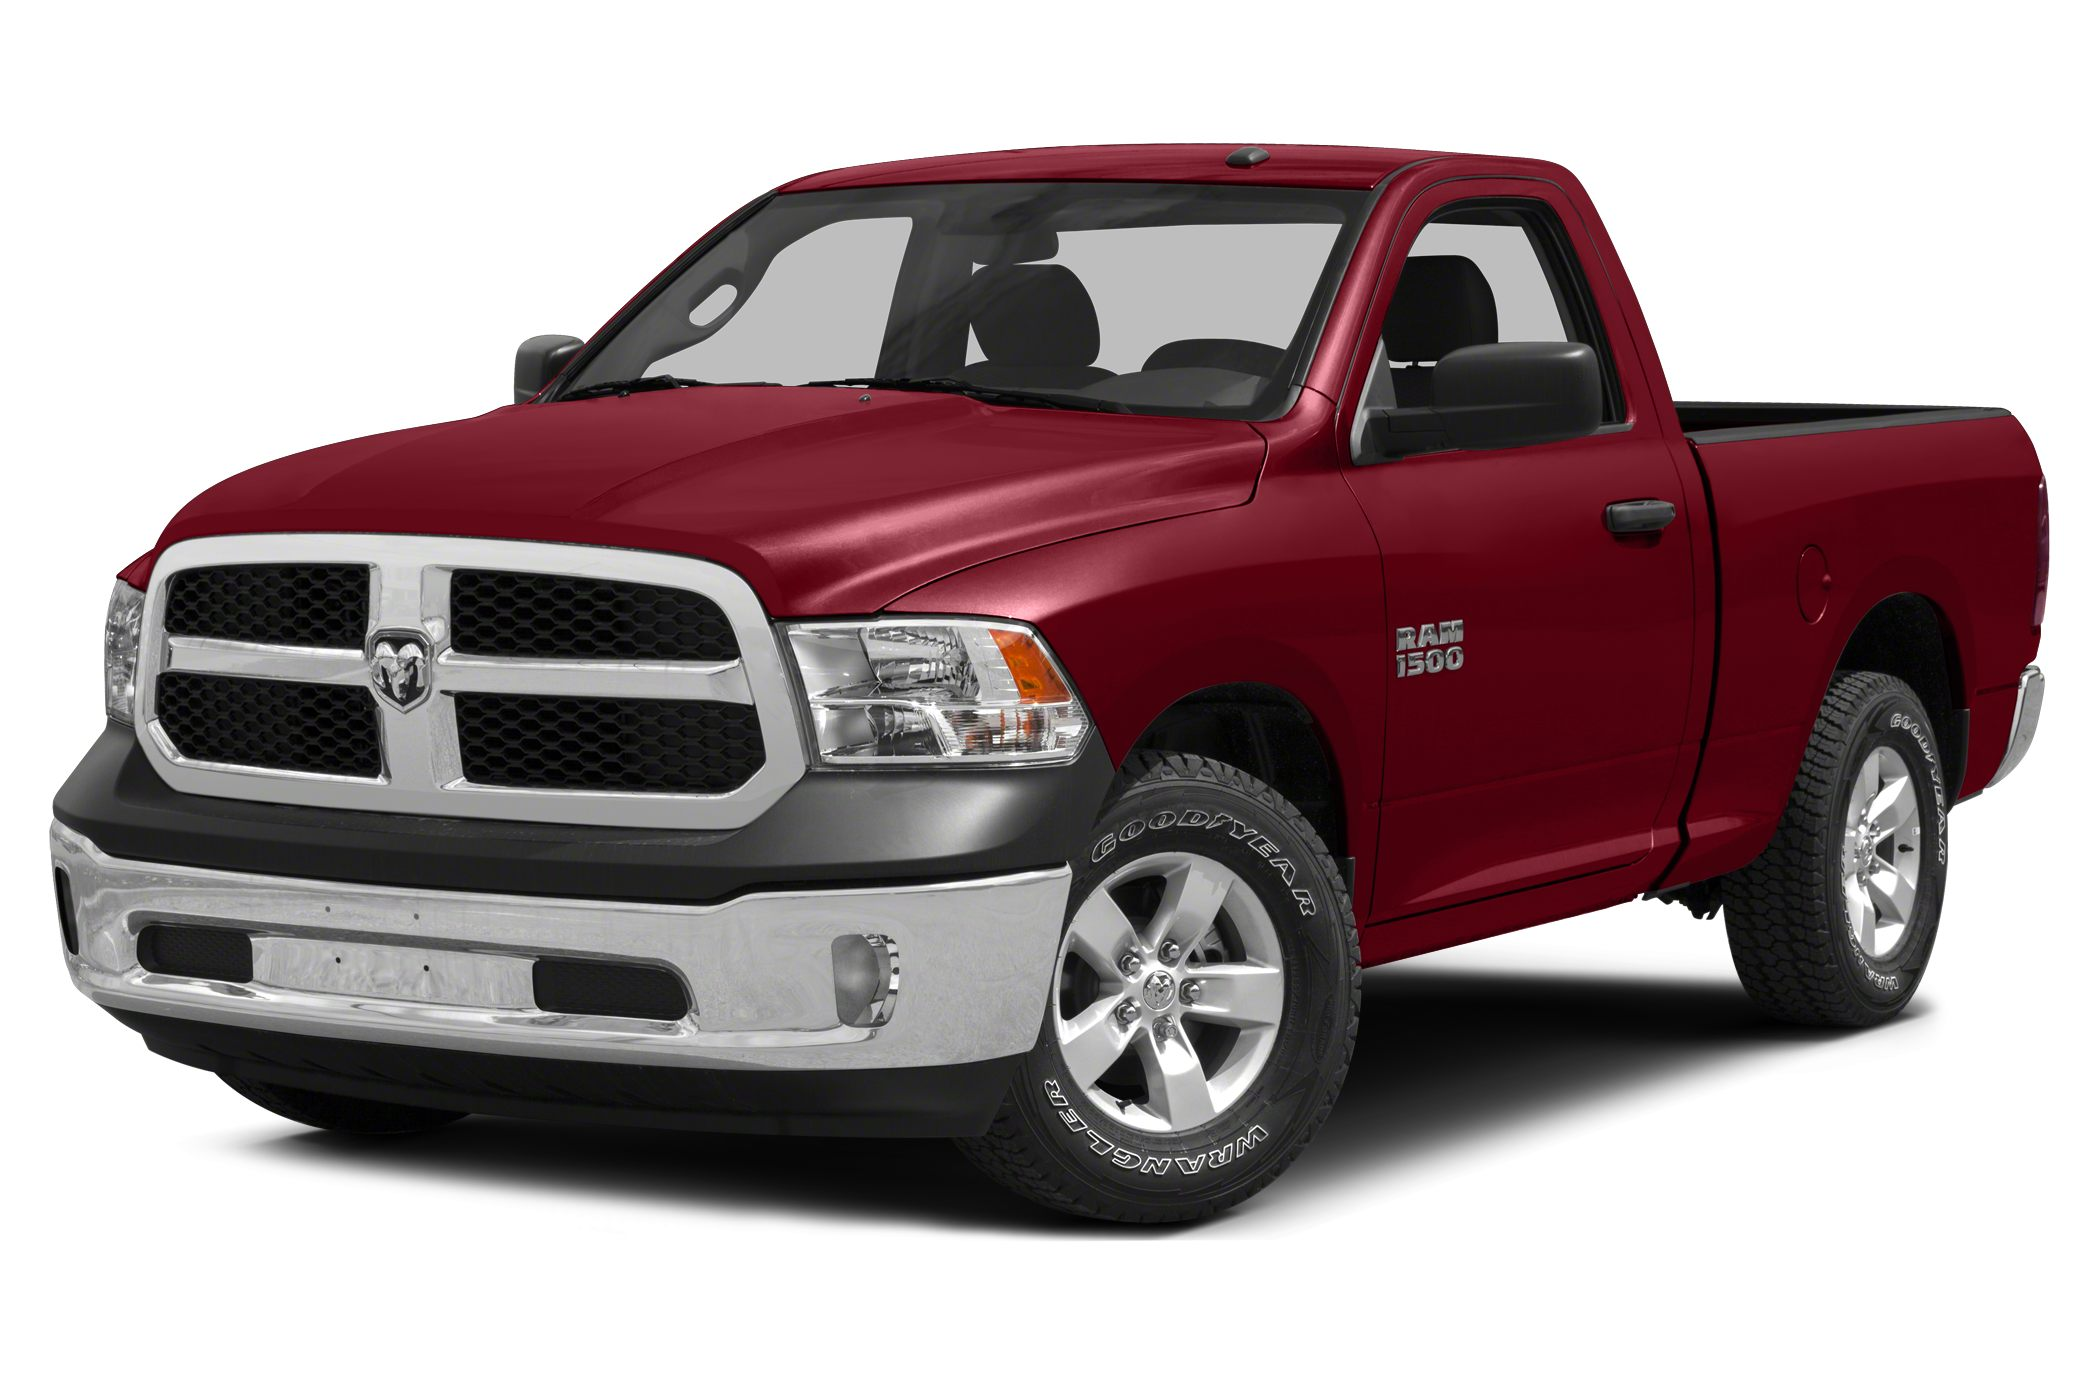 2015 RAM 1500 SLT Crew Cab Pickup for sale in West Monroe for $45,320 with 2 miles.